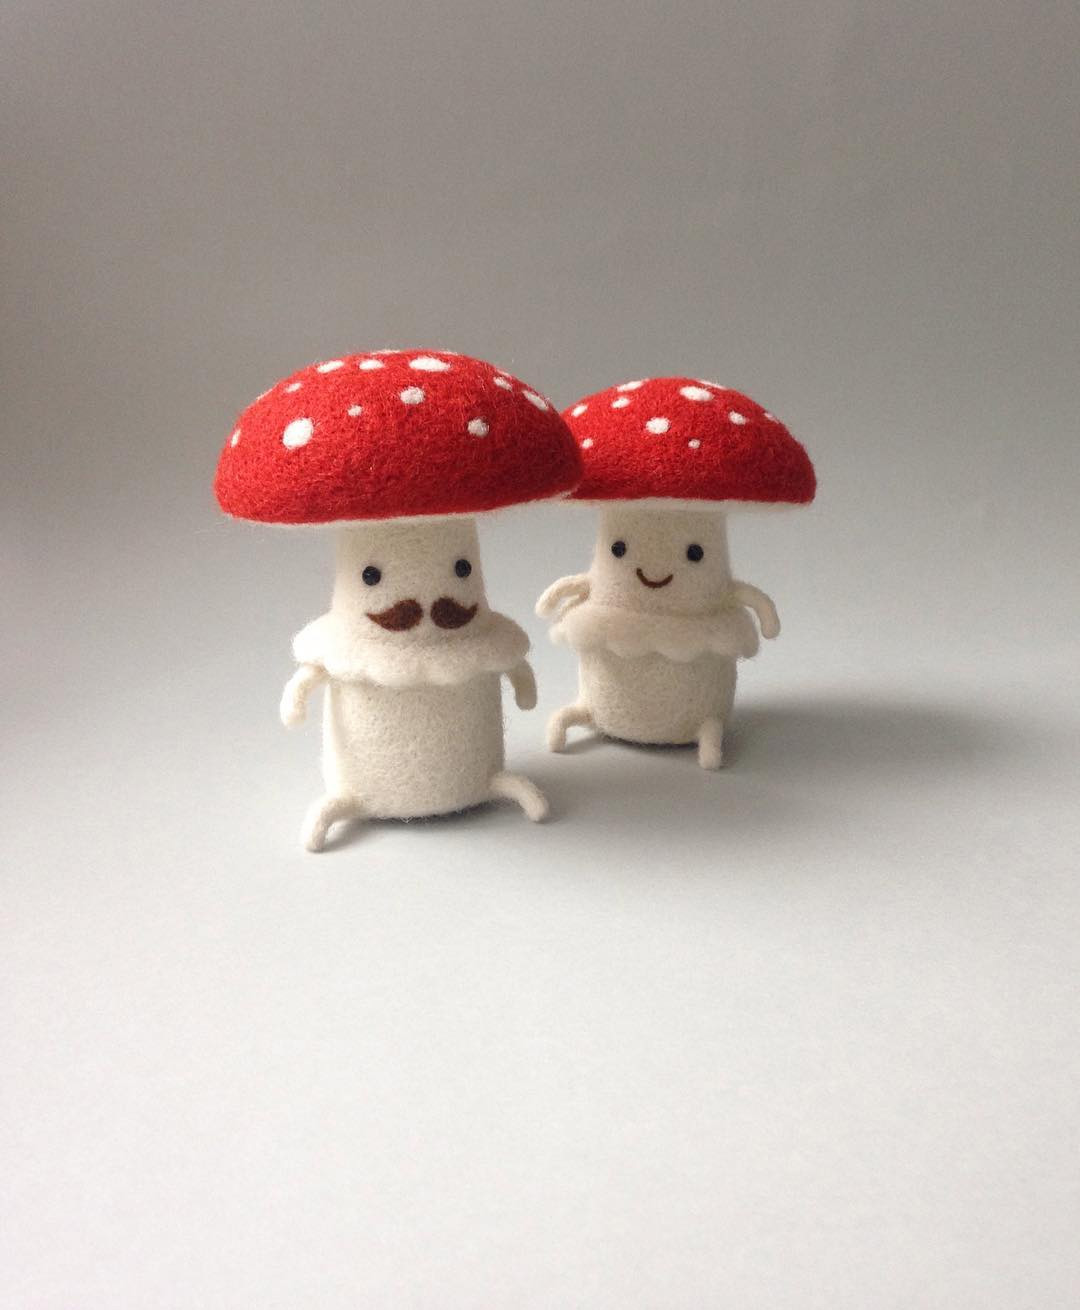 New Needle Felted Food and Animal Friends by Hanna Dovhan